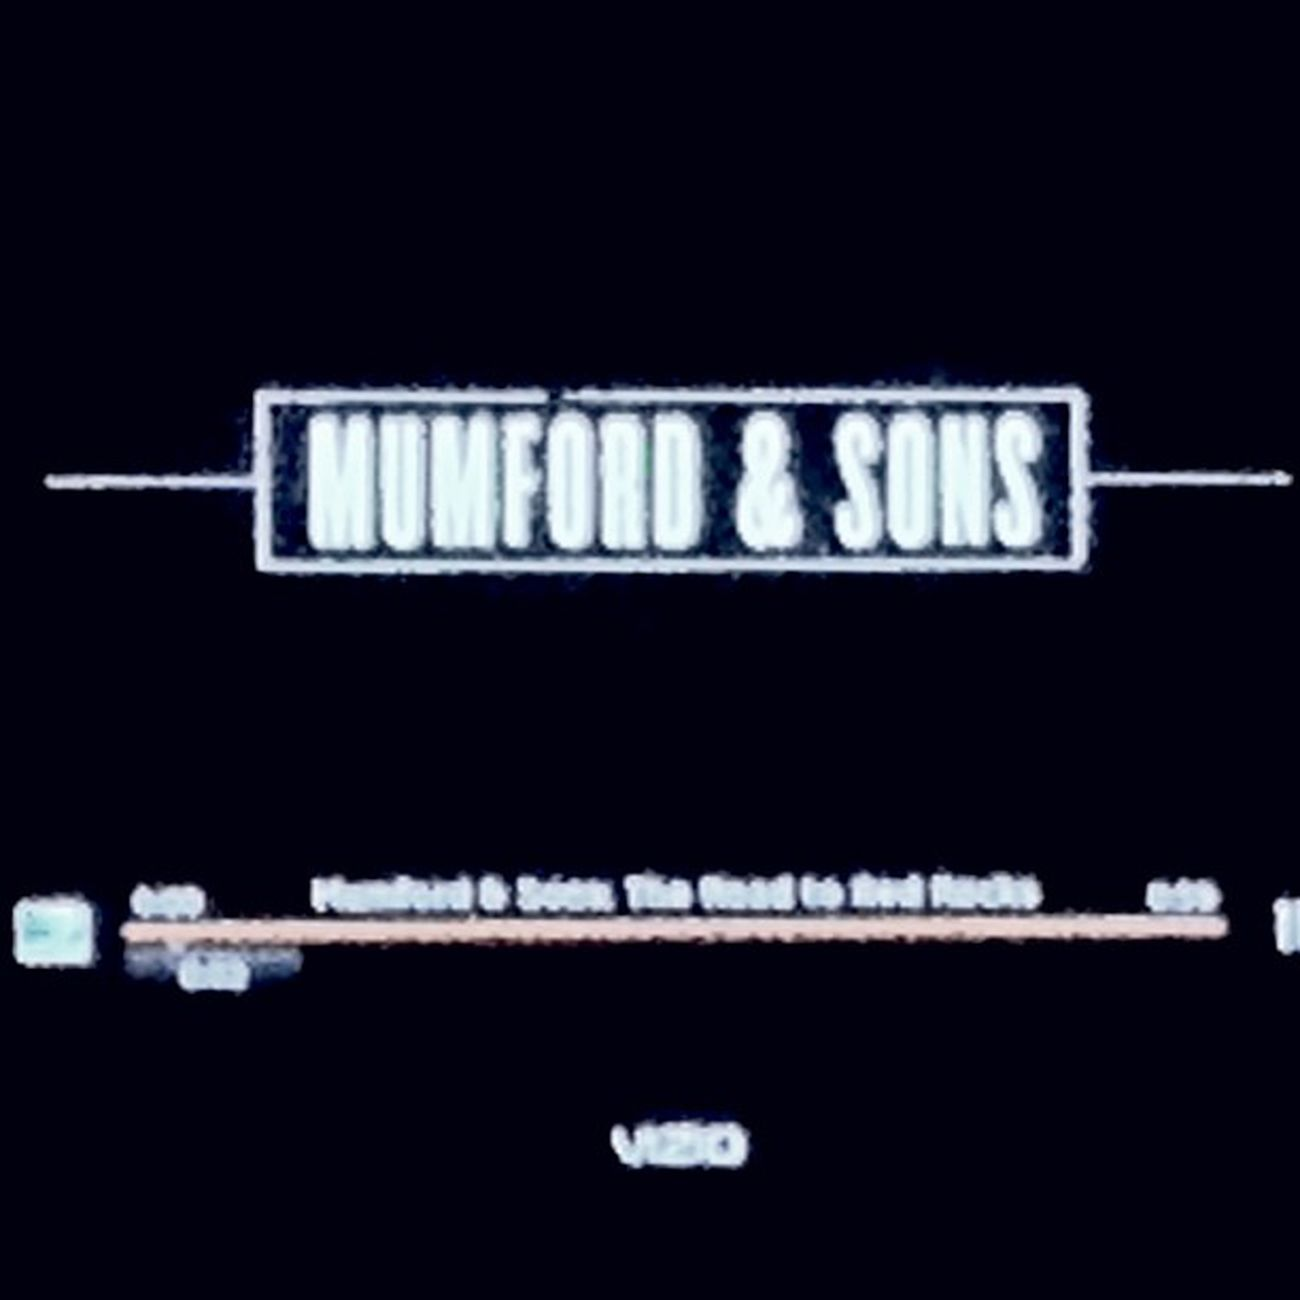 Seriously in live with these guys can not wait to see them again in JuneMusic @MumfordandSonsMumford Babel Musiciskife redrocksliveiwillwaitbestbandeverbanjorocker